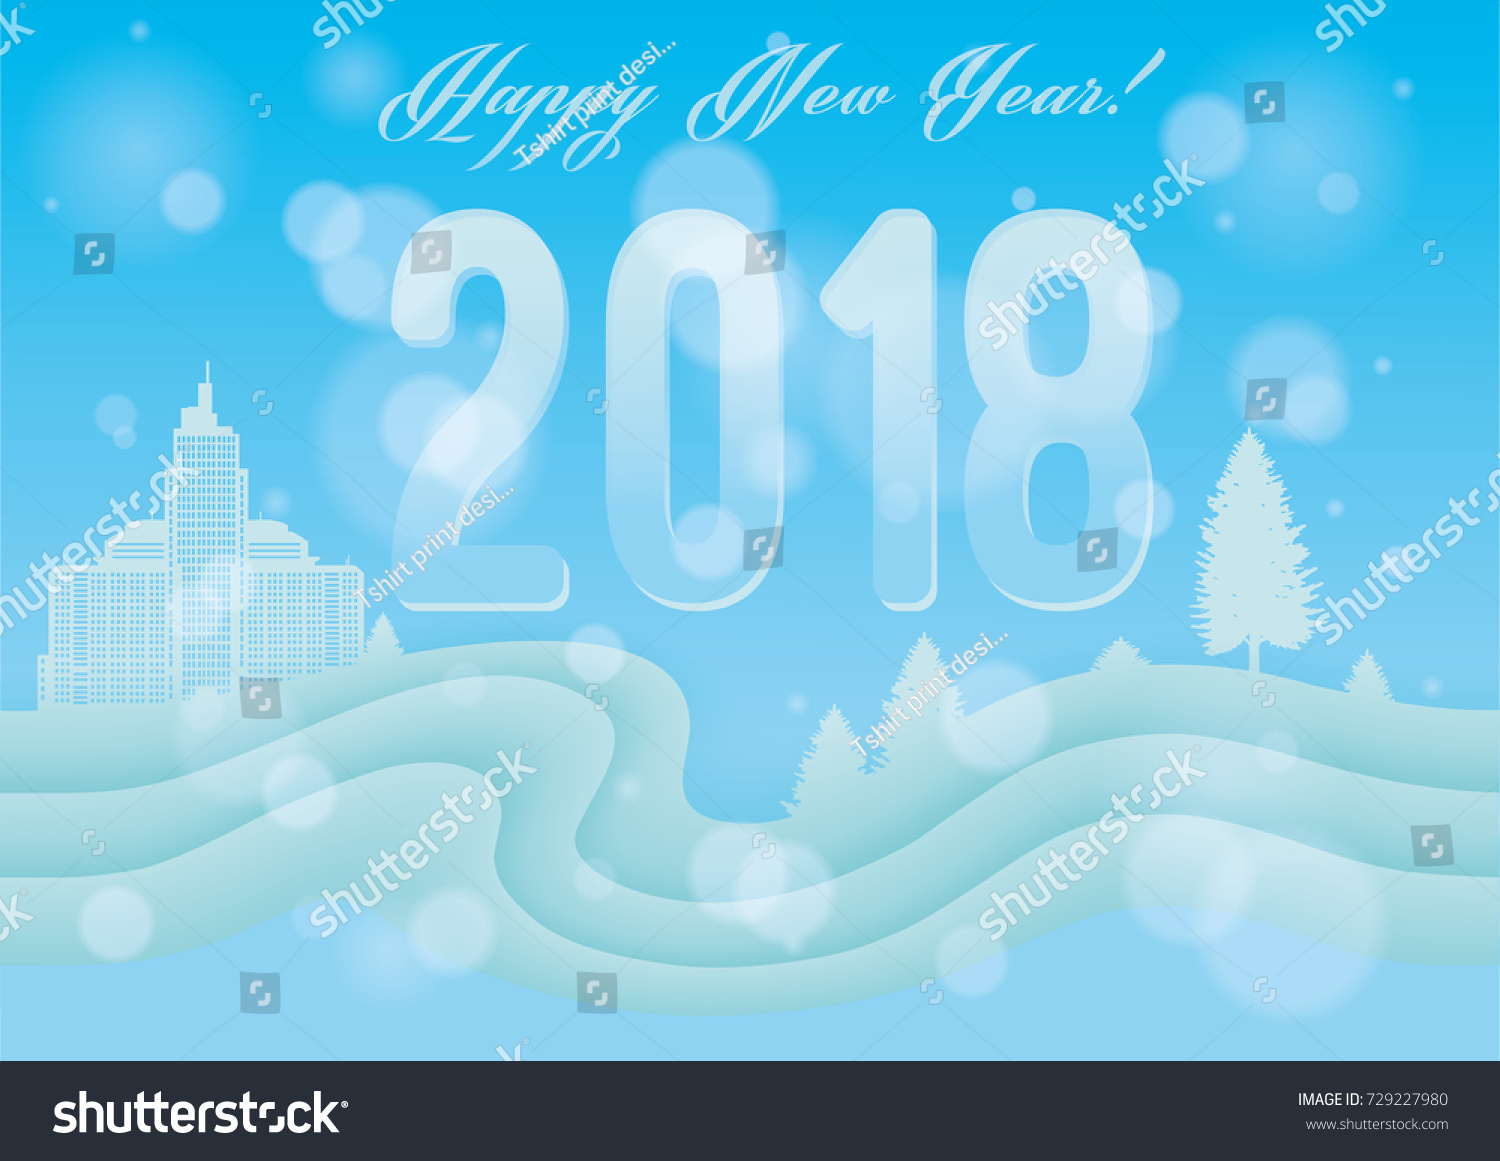 City Snow Snowy Landscape New Year Stock Illustration 729227980